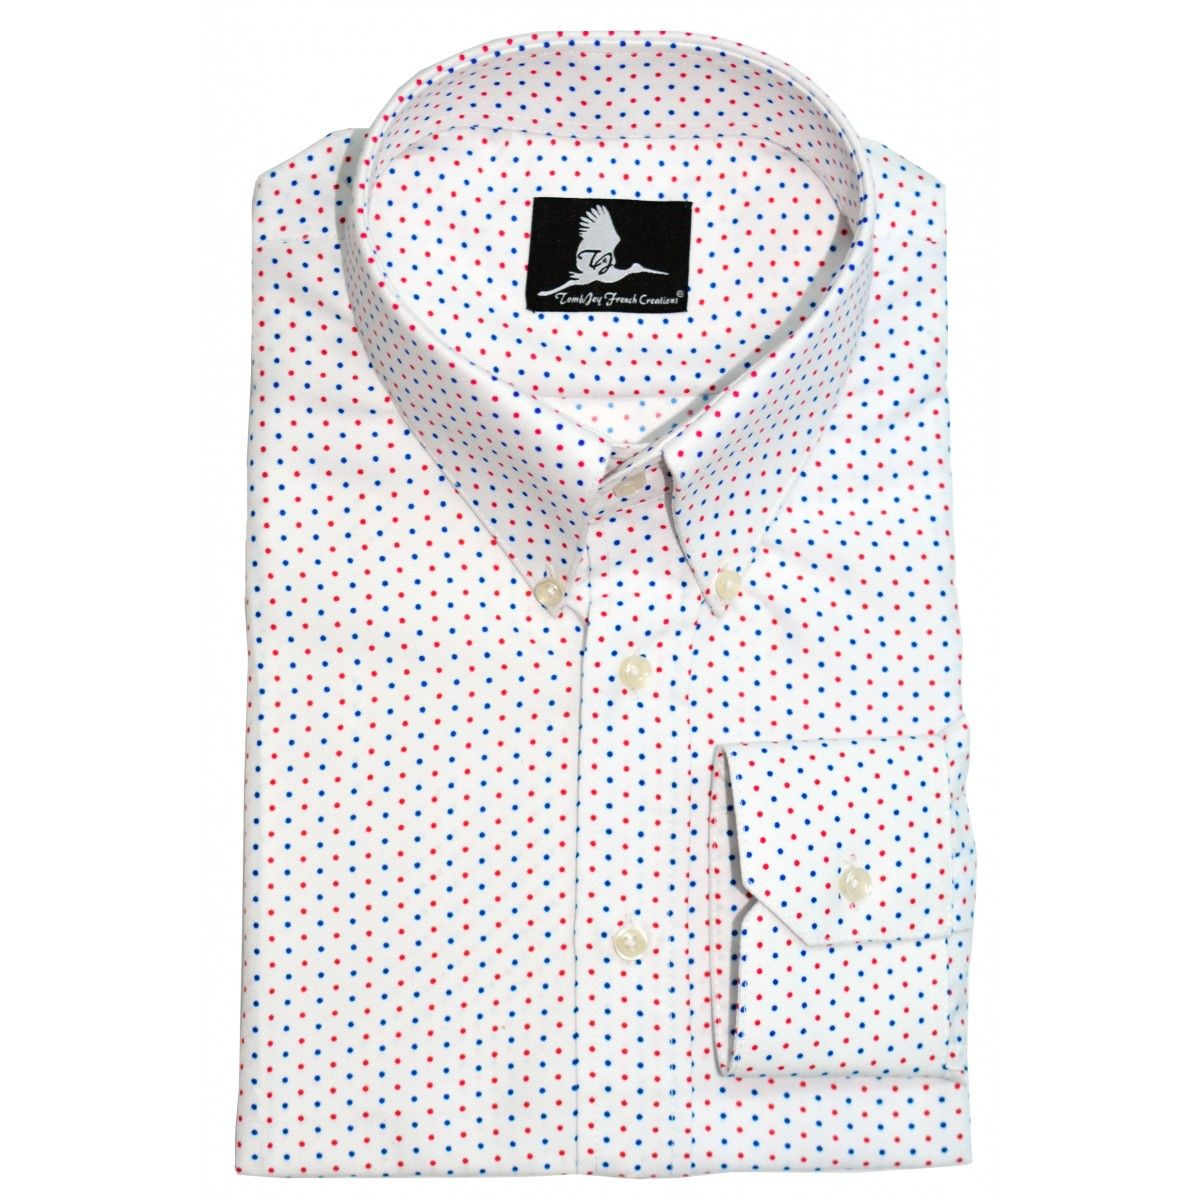 45c1081a0bbbfc White Mini Blue and Red Dots Shirt | Printed shirts | Shirts, Red ...